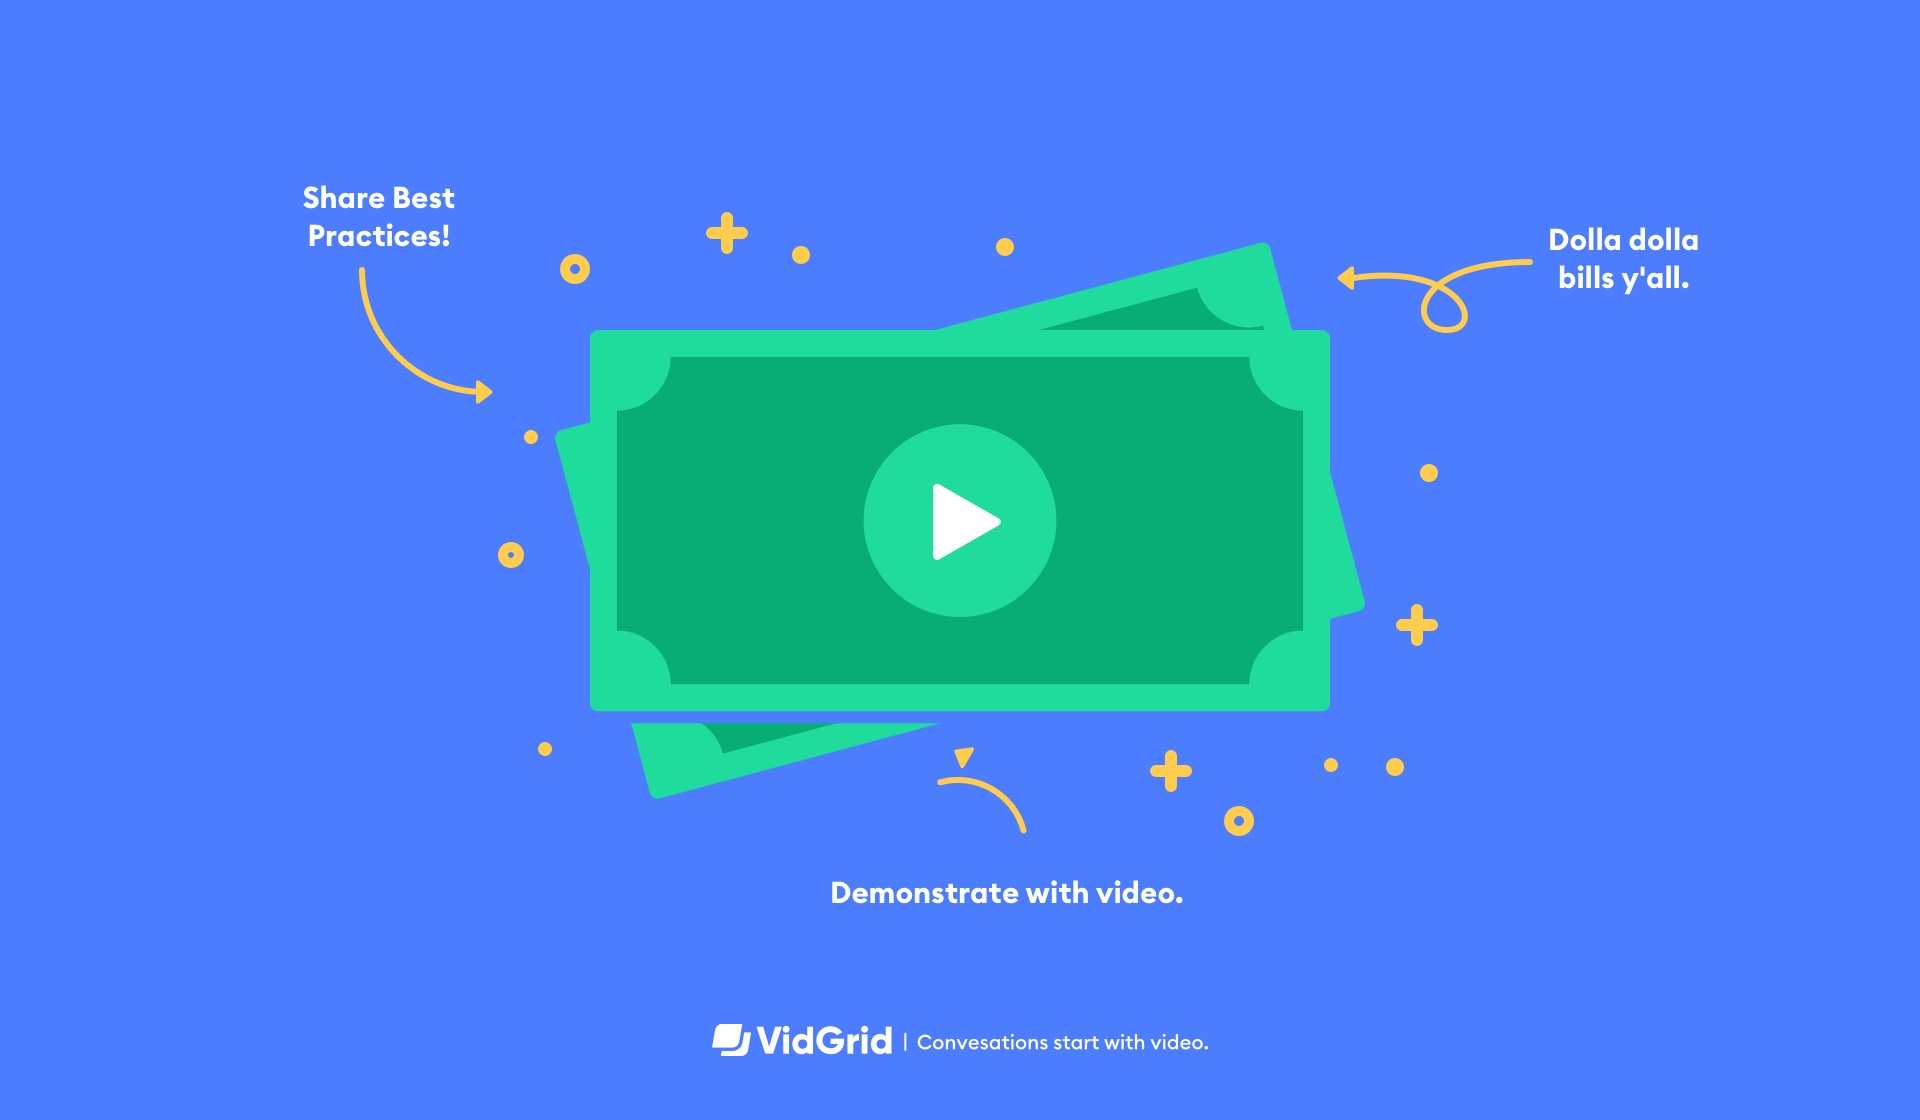 Expand Accounts with Personalized Videos